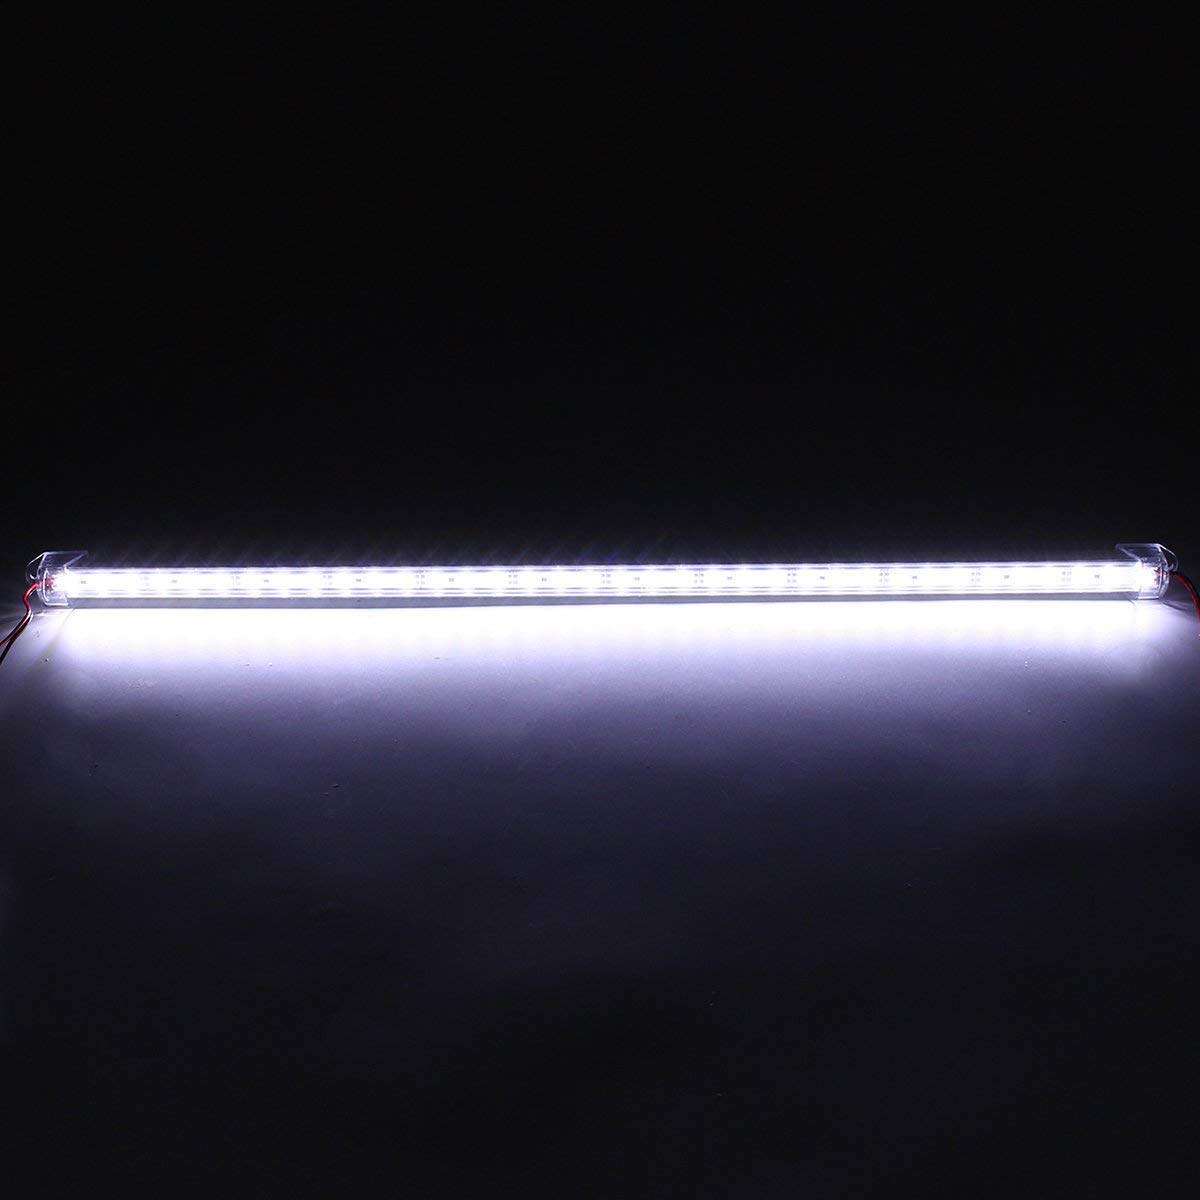 50CM 8520SMD Waterproof 36 LED Rigid Strip Light Cabinet Camping Boat Lamp for Home Decor DC12V - (Color: Pure White)